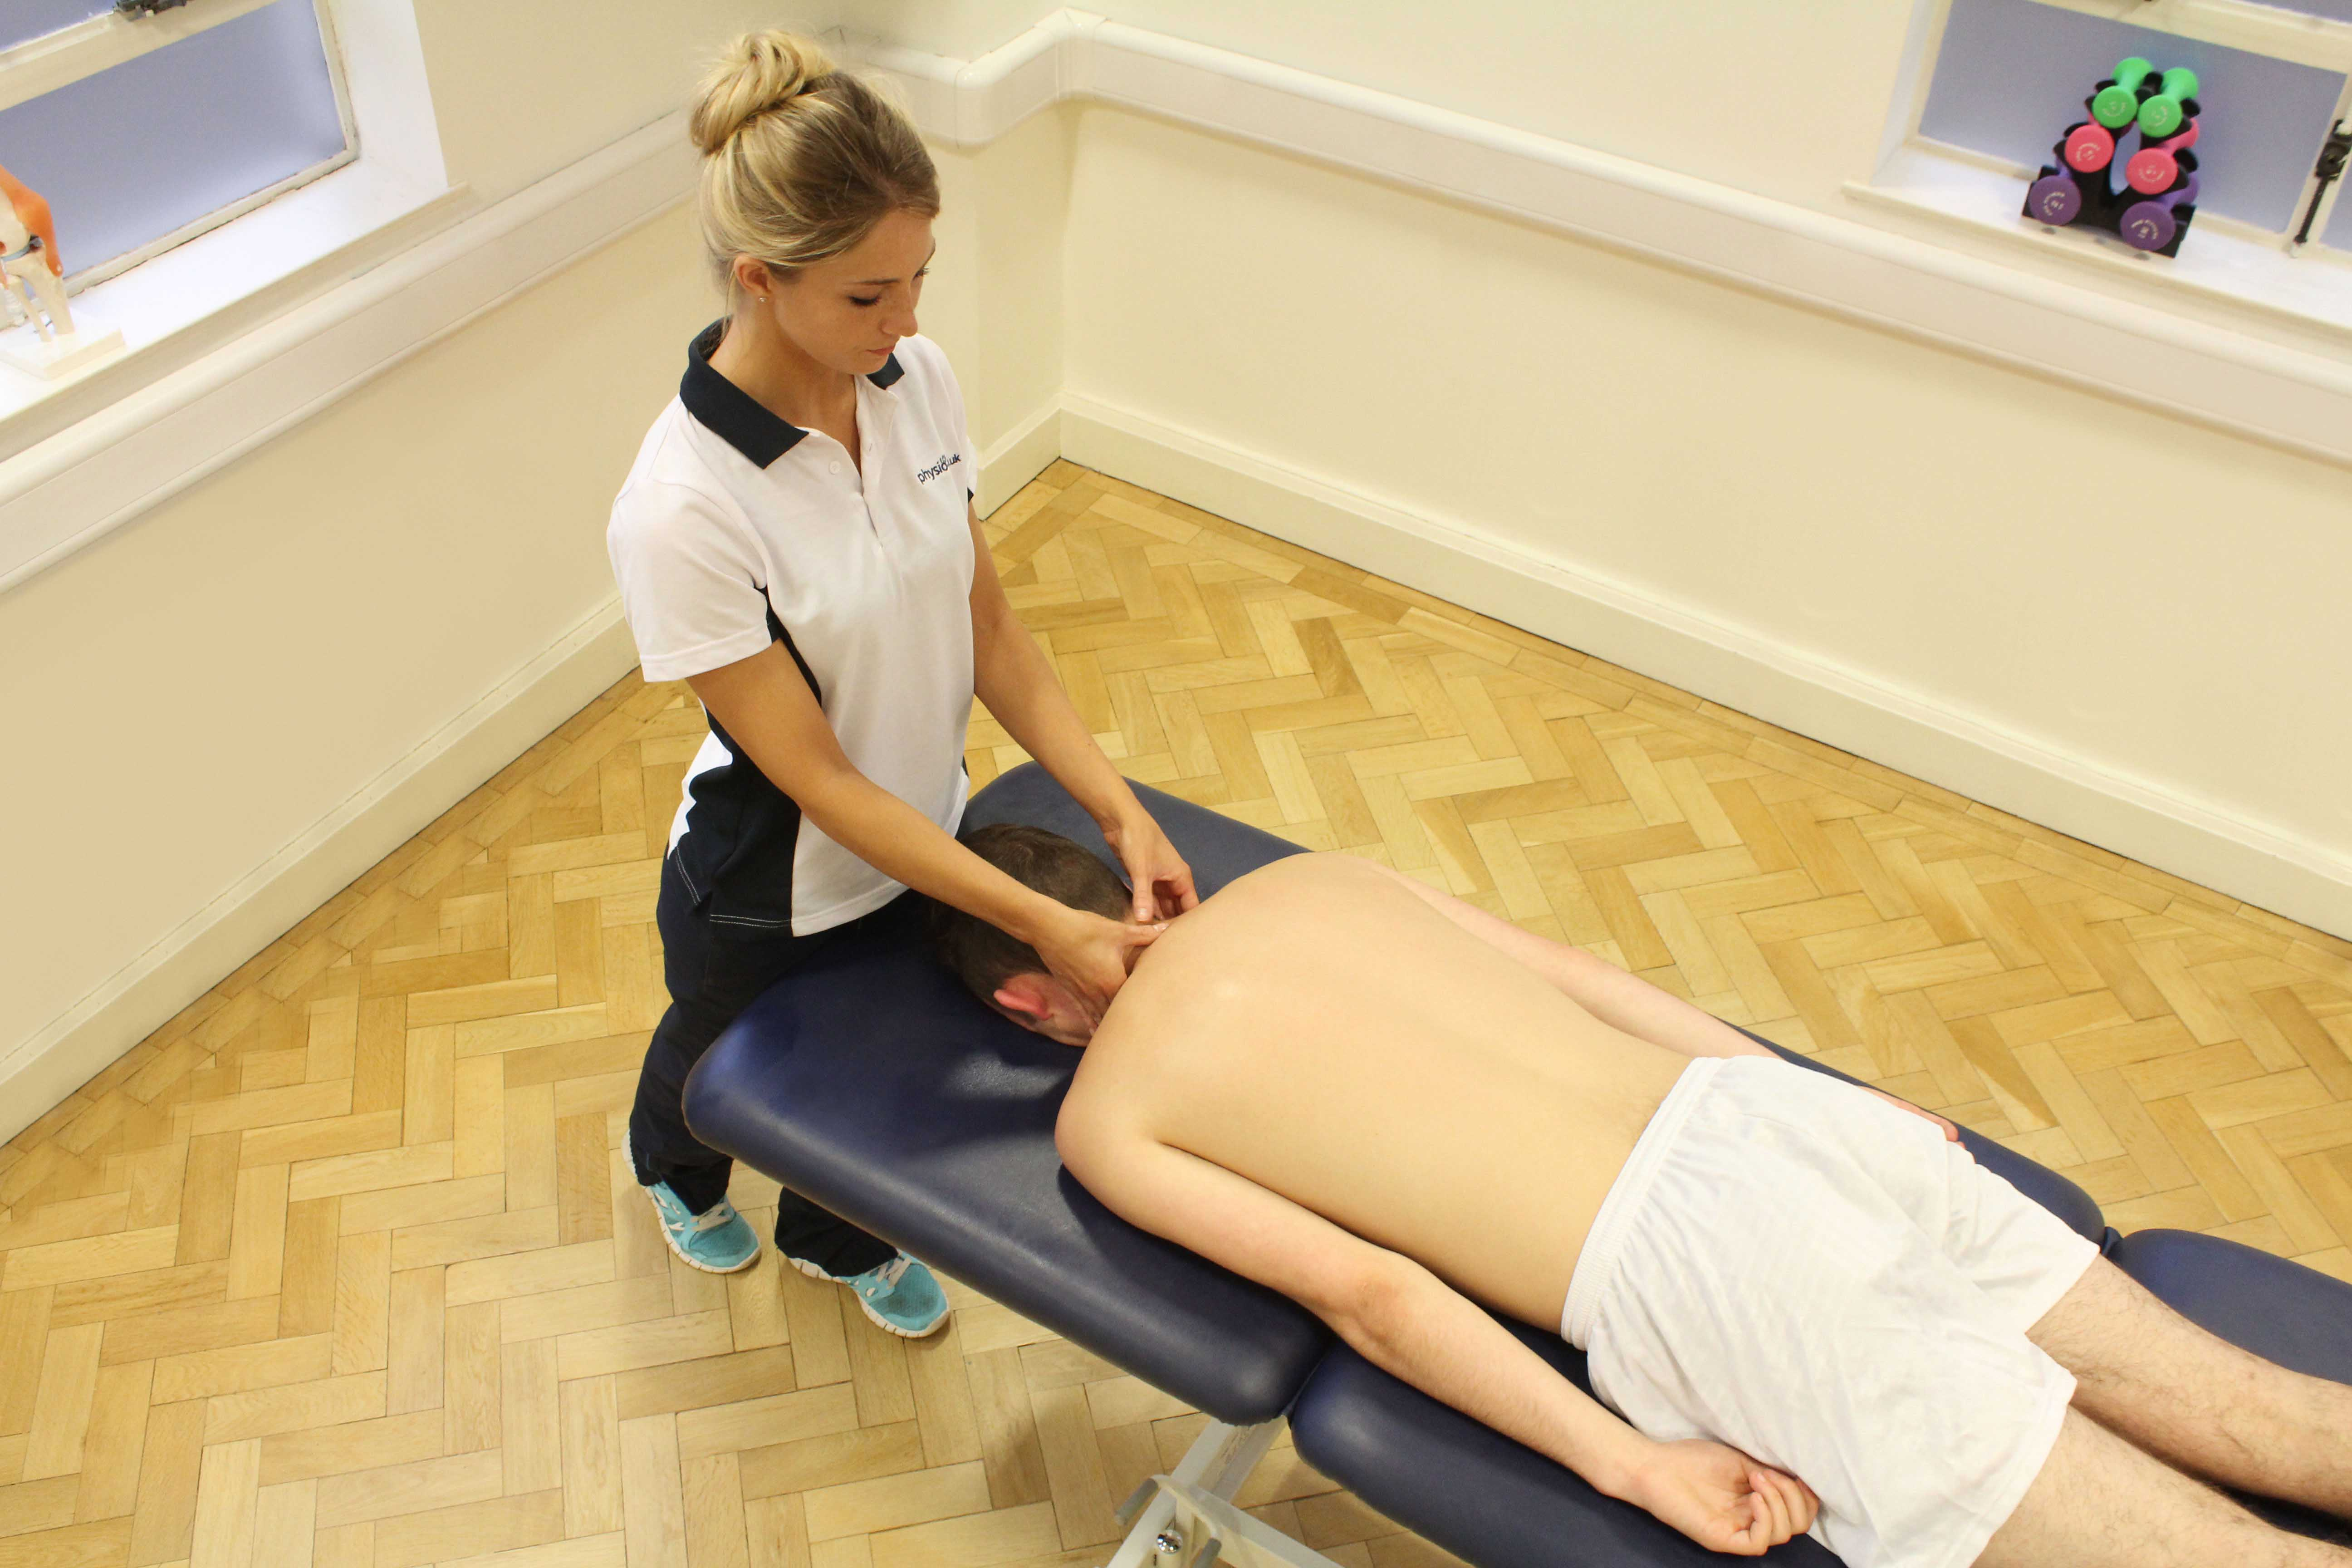 Massage and mobilisations of the cervical spine by a specilaist massage therapist